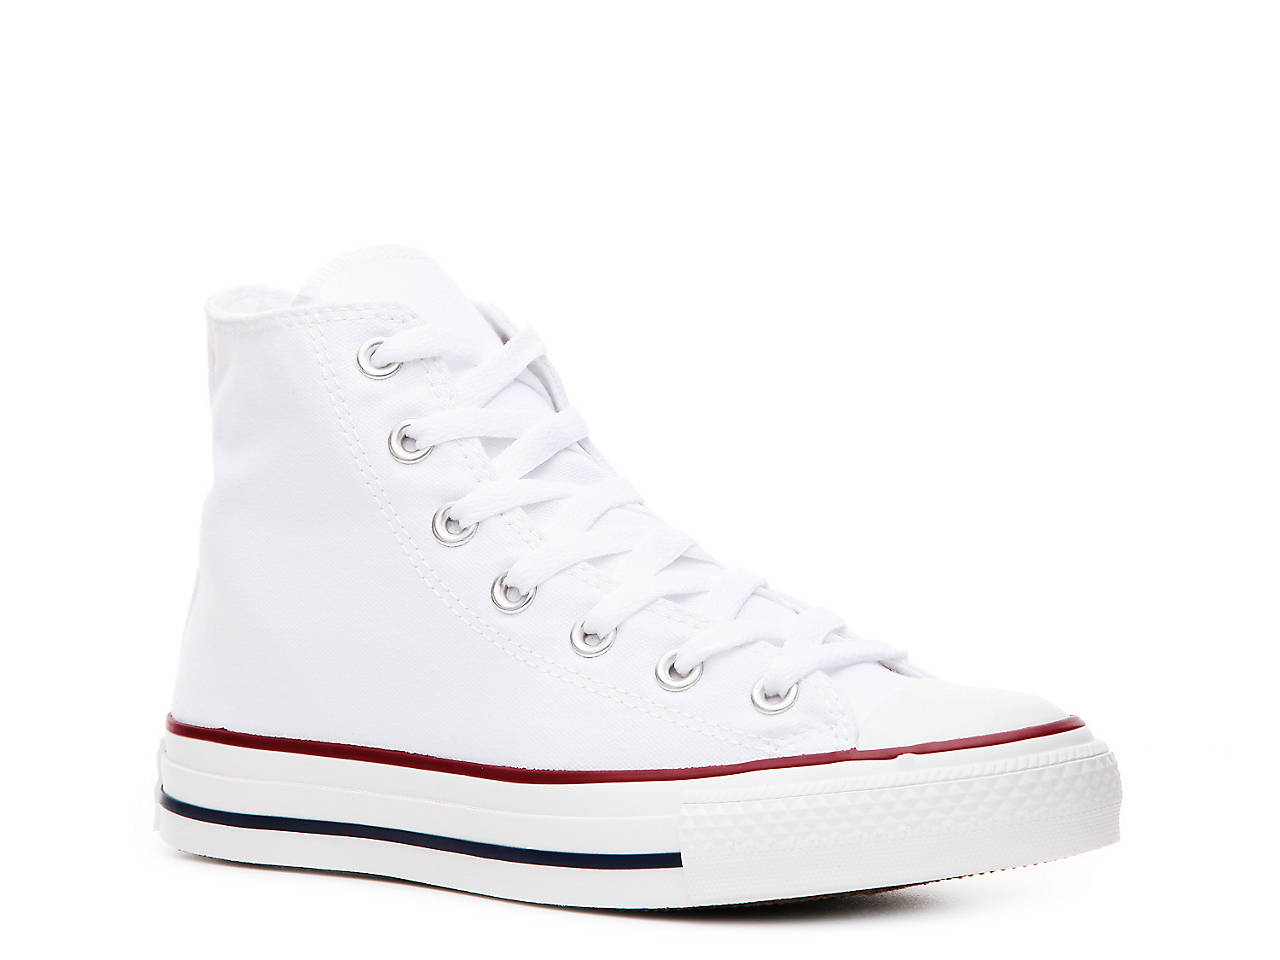 Converse Chuck Taylor All Star High-Top Sneaker - Women s Women s ... f387e6ec0